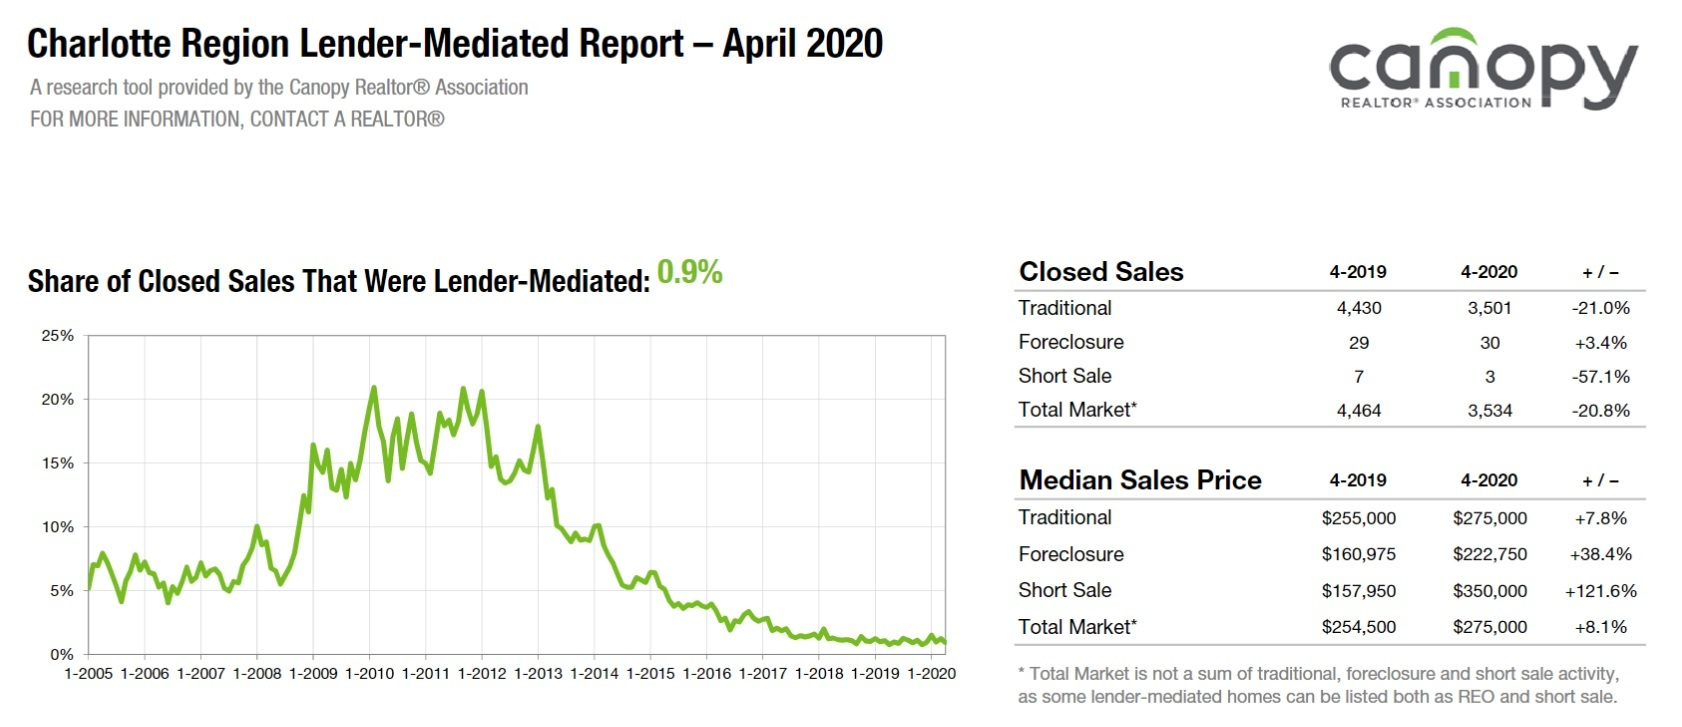 Foreclosure and Short Sale Home Sales In April 2020 Charlotte Region